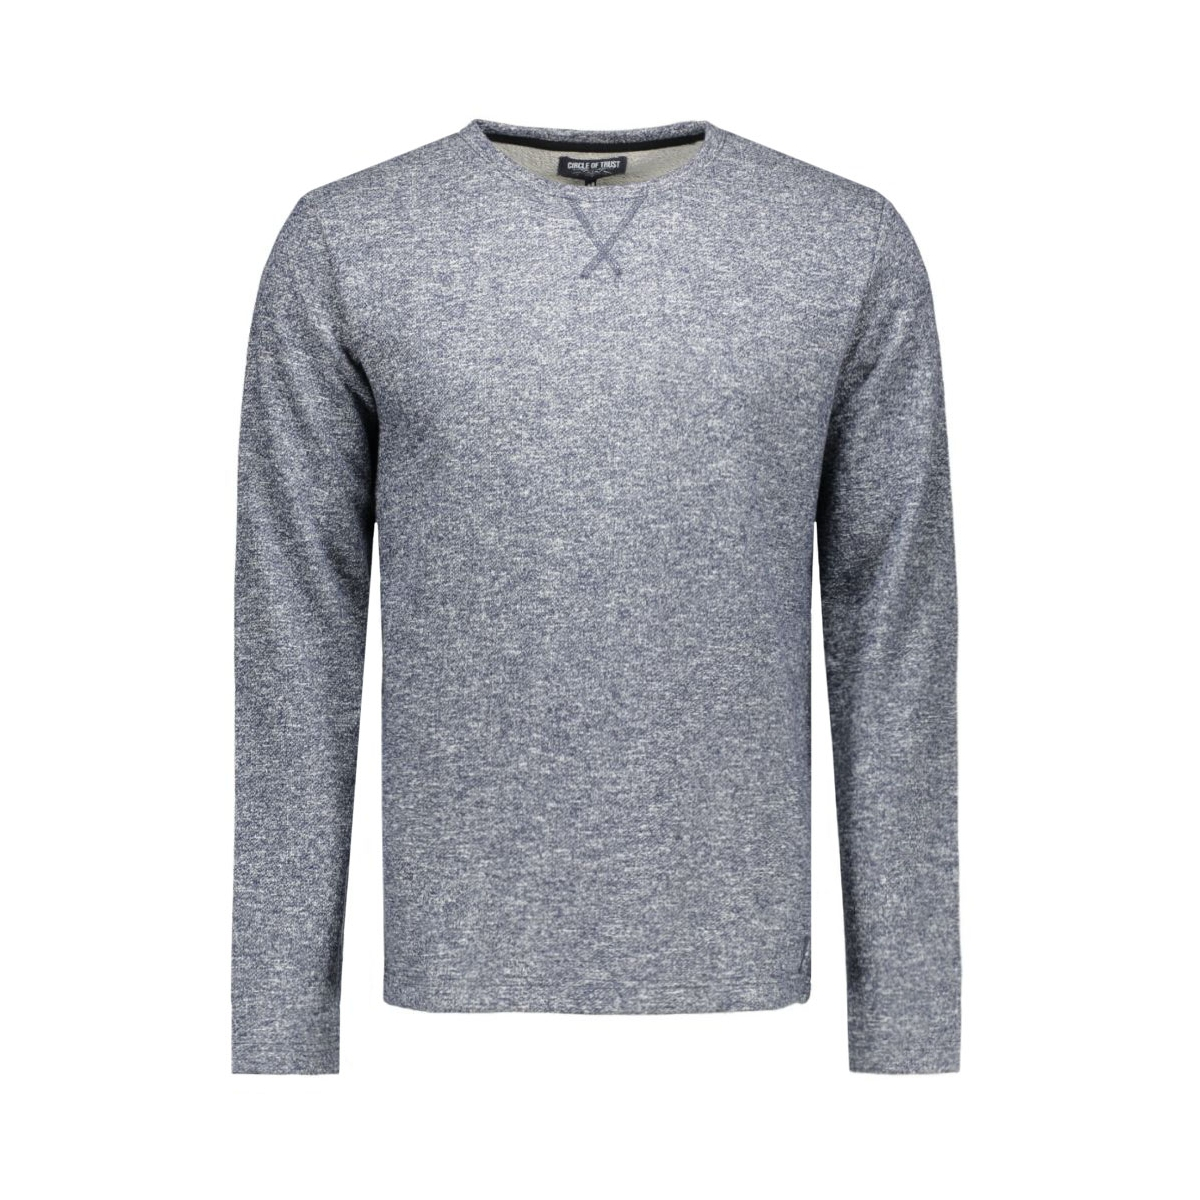 hw16.16.1542 jordan sweat circle of trust sweater frosted navy